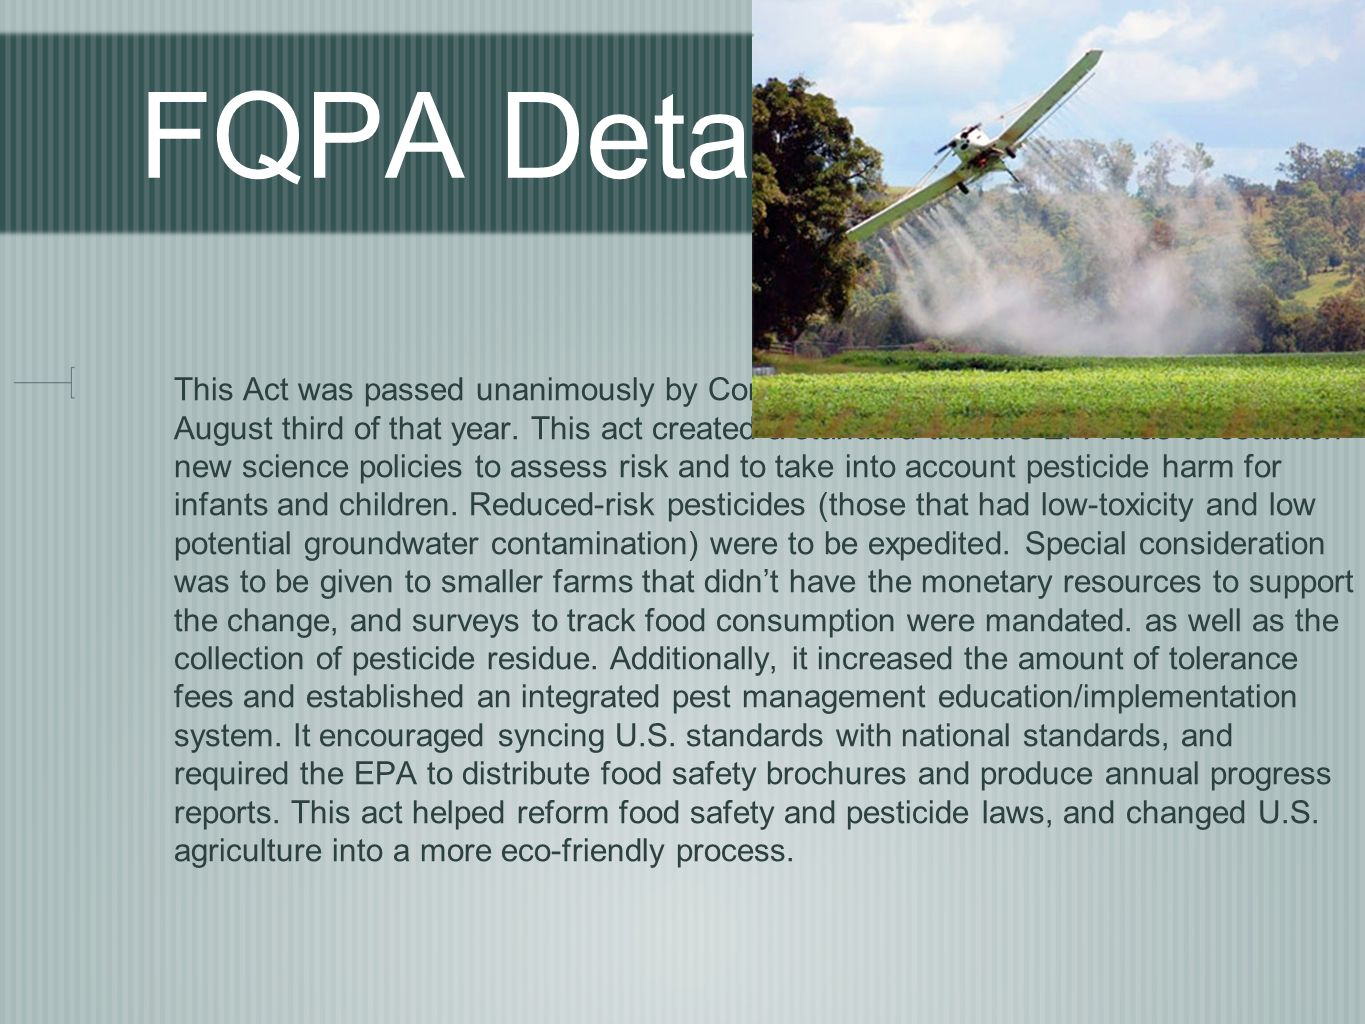 FQPA Details This Act was passed unanimously by Congress in 1996 and was signed into law on August third of that year.